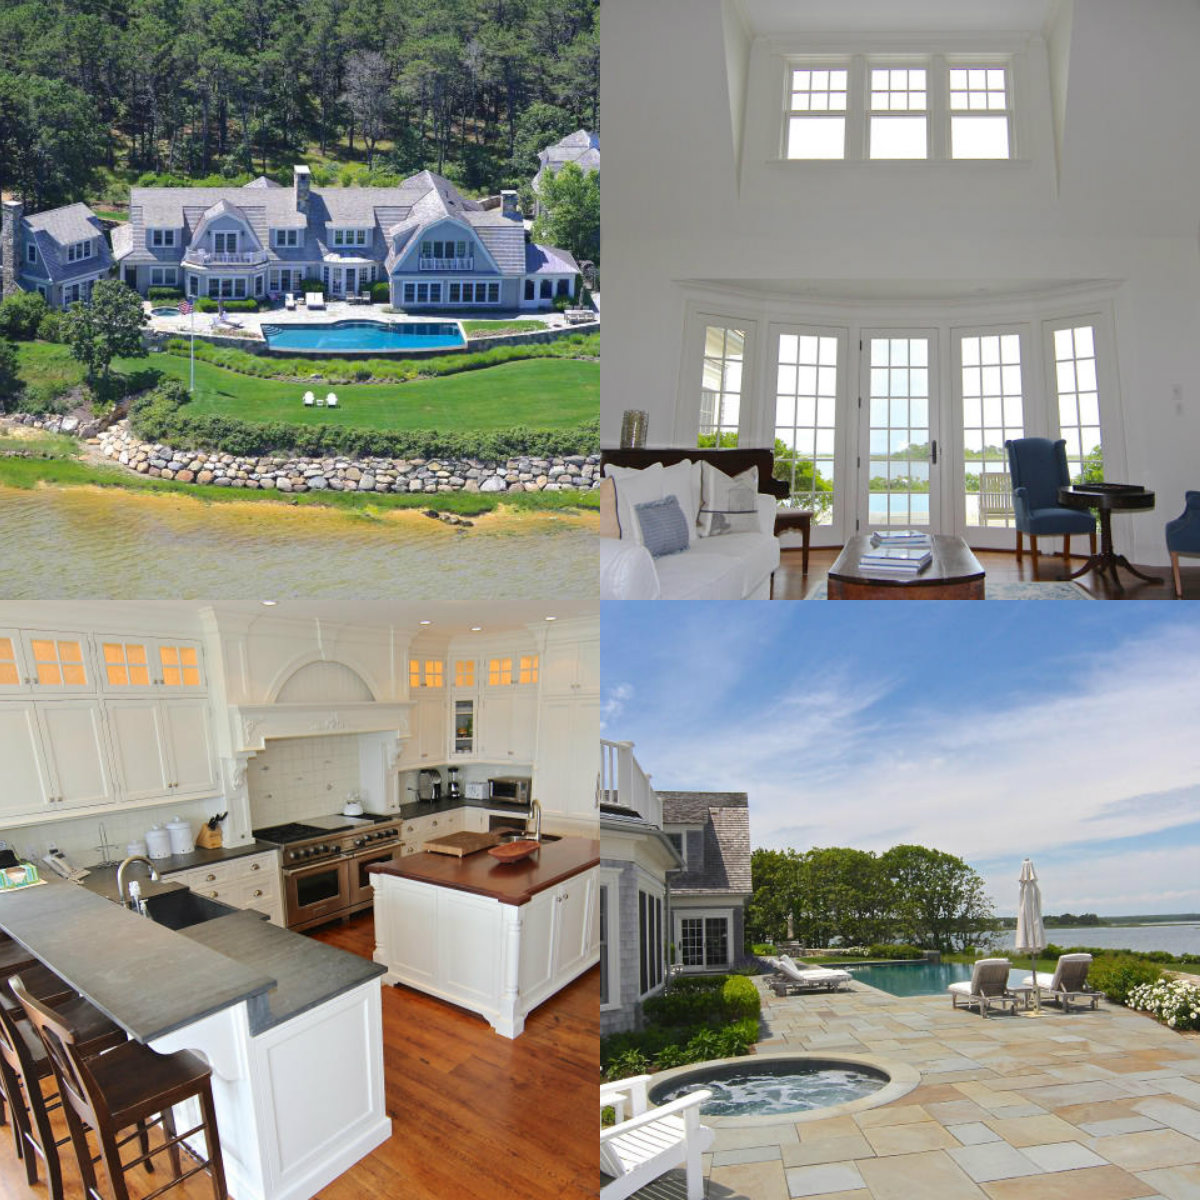 4 images of 96 Beach Road in Edgartown in Cape Cod MA